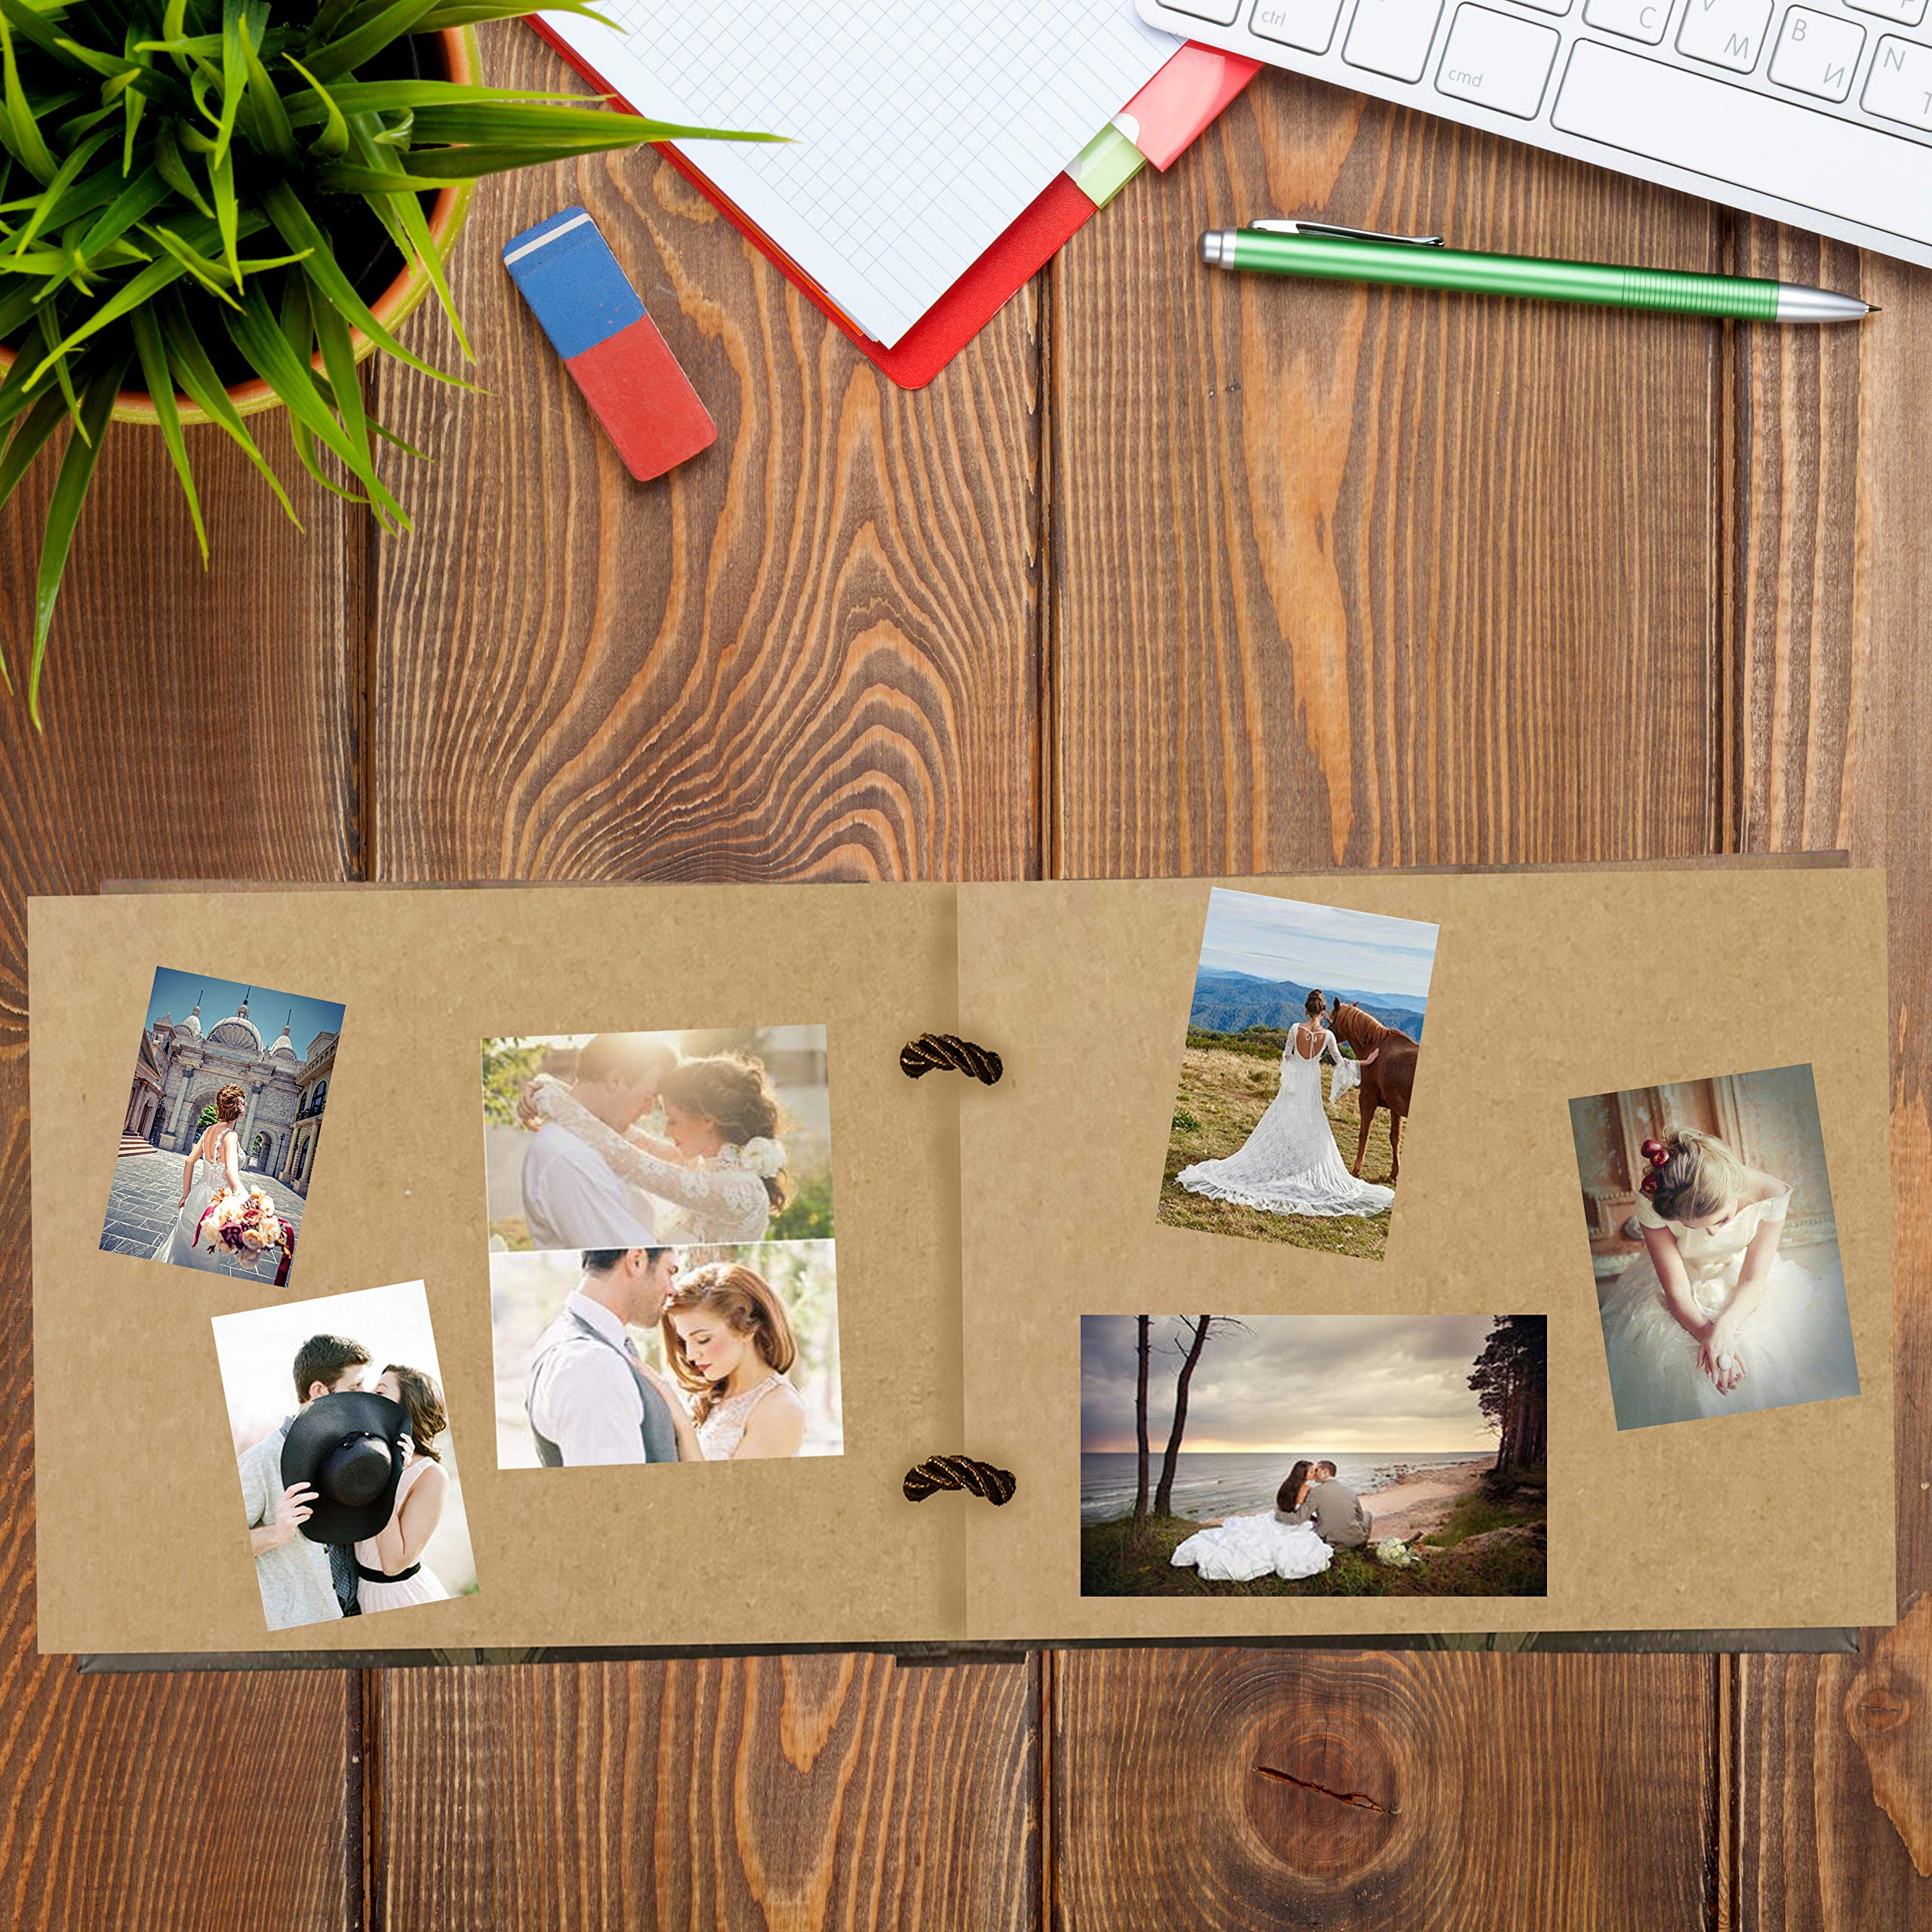 Potok Photo Album Scrapbook, 12x9 inches Photo Album Scrapbook Great for Craft Paper DIY Anniversary, Wedding Guest Book, Valentines Day Gifts, DIY Anniversary Travel Memory Book (Our Adventure Book) by Potok (Image #5)